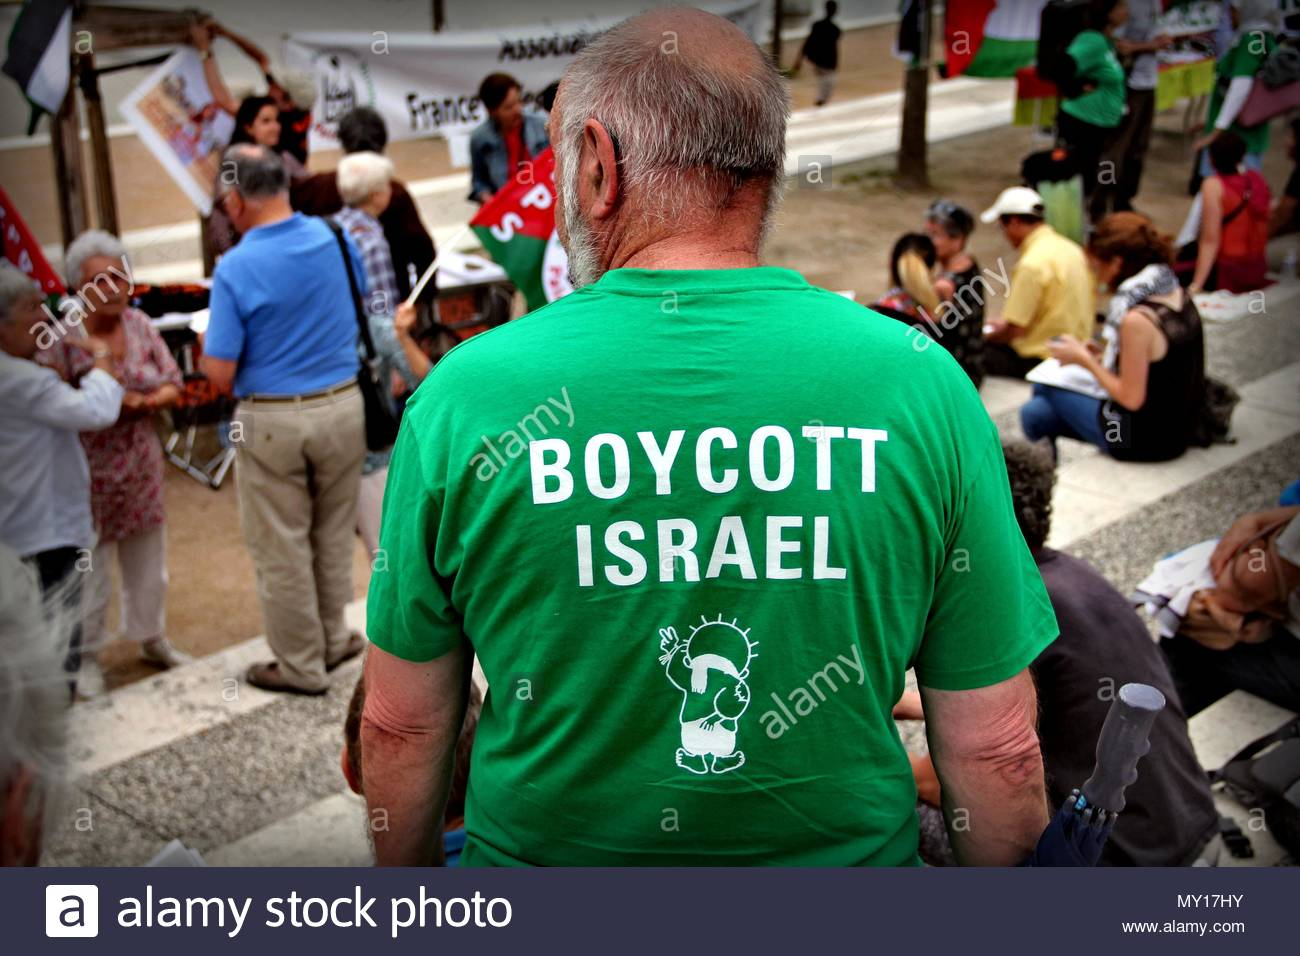 Lyon, France. 5th June, 2018. A protester wears a shirt reading 'Boycott Israel' in Lyon, France on June 5, 2018, to denounce Israeli Prime Minister Benjamin Netanyahu's visit to Paris to meet French President Emmanuel Macron. Protesters gathered to rally against the violence by Israeli forces against Palestinians and the ongoing violence in the Gaza border. (c) copyright Credit: CrowdSpark/Alamy Live News - Stock Image